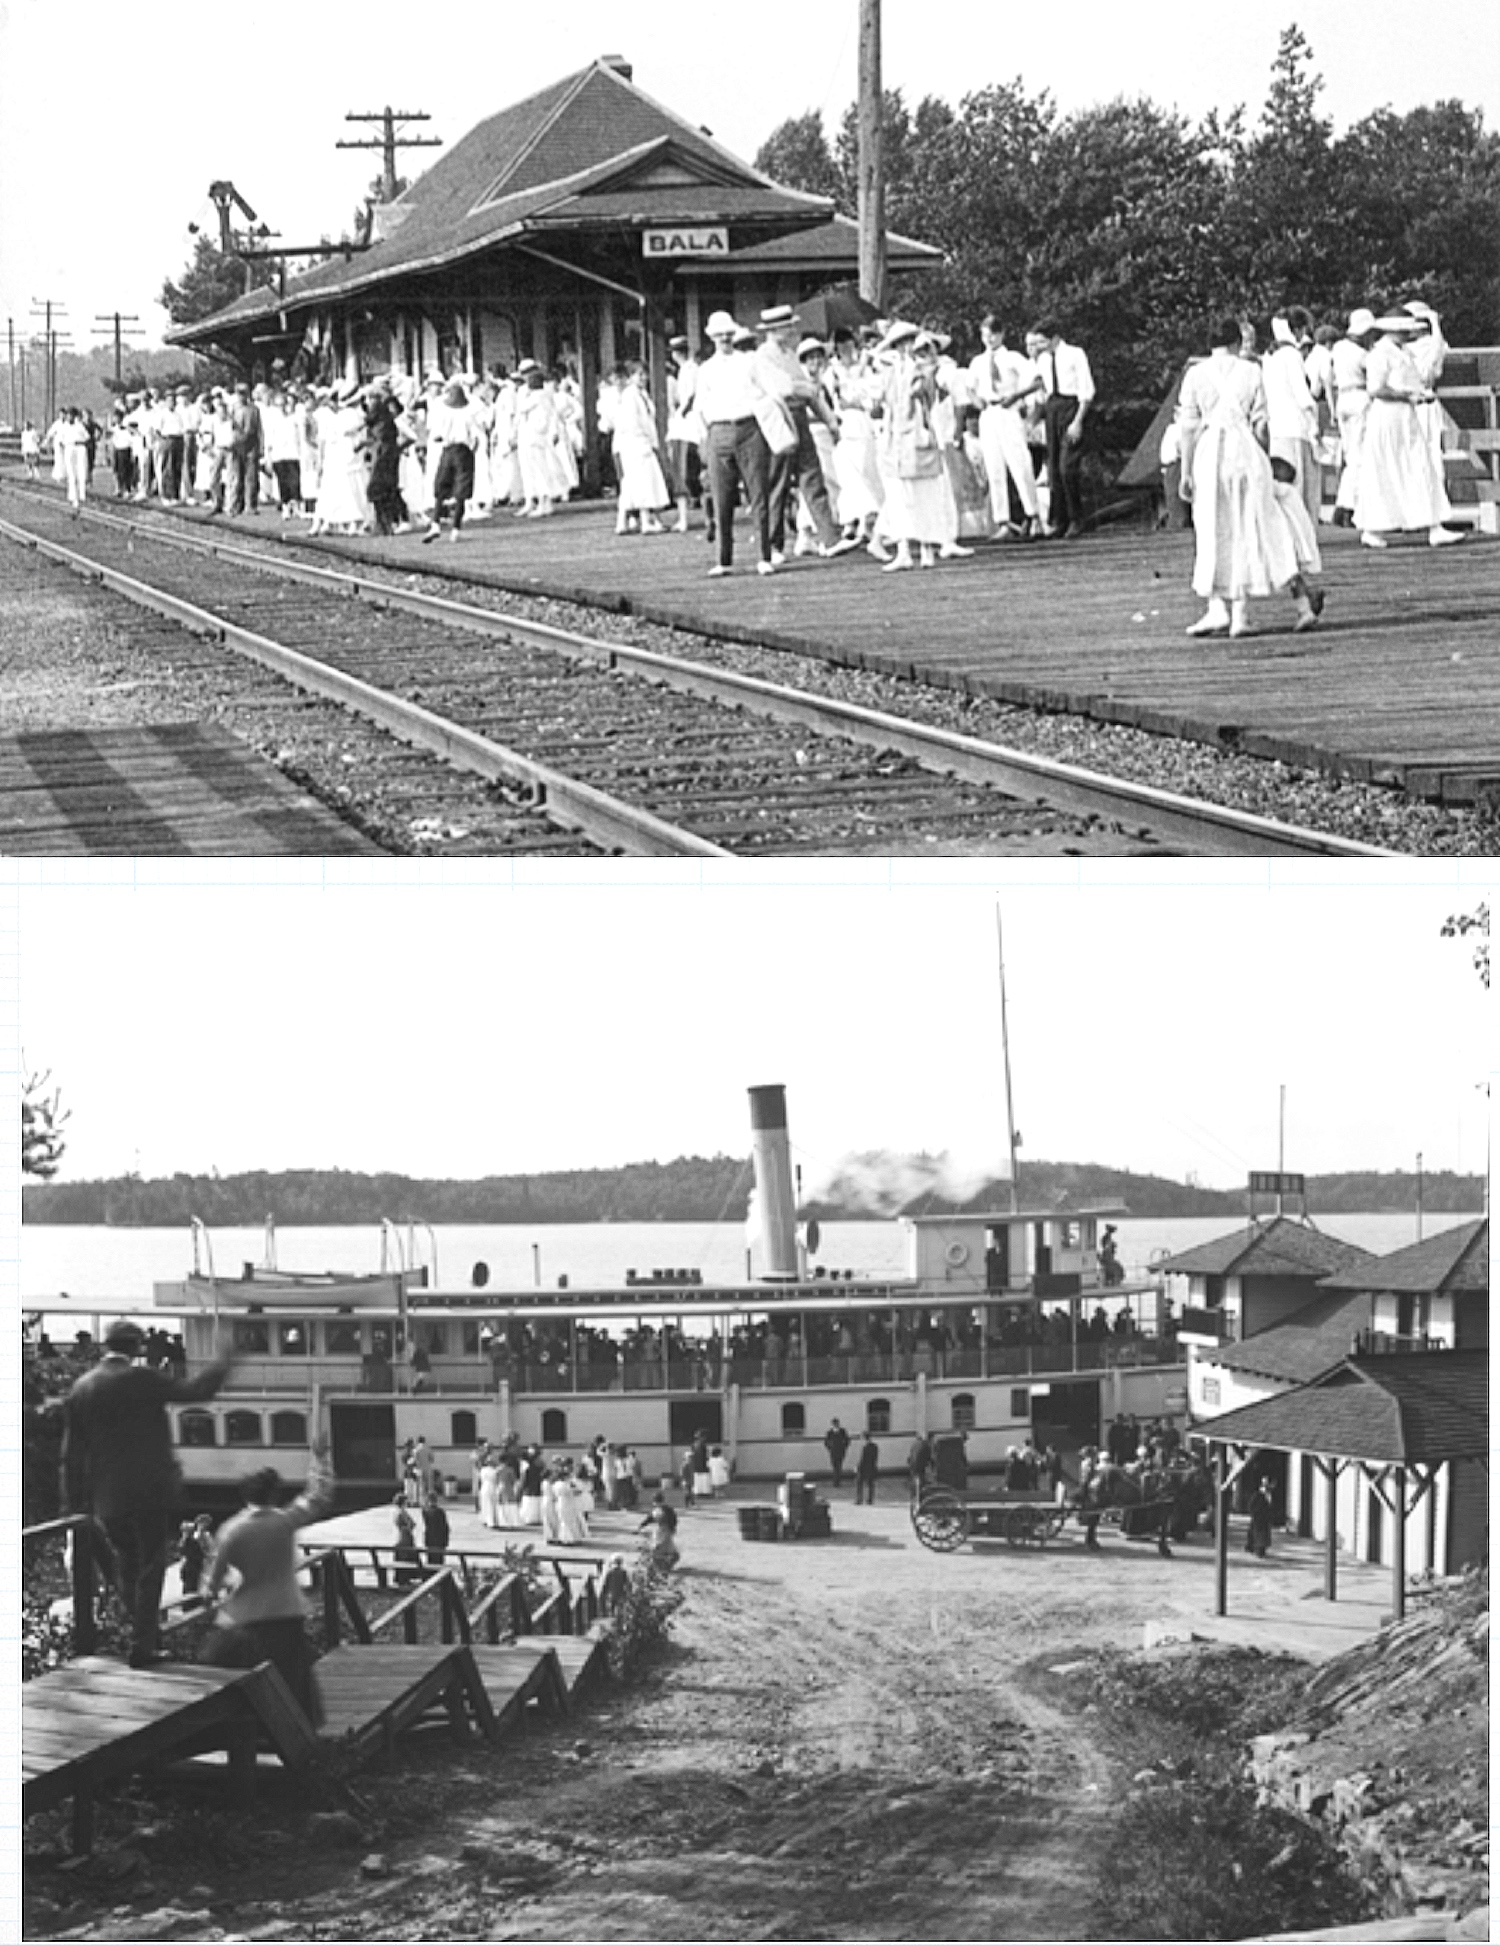 Muskoka+Train+and+Steamer+Boat+Turn+of+the+Century.jpg